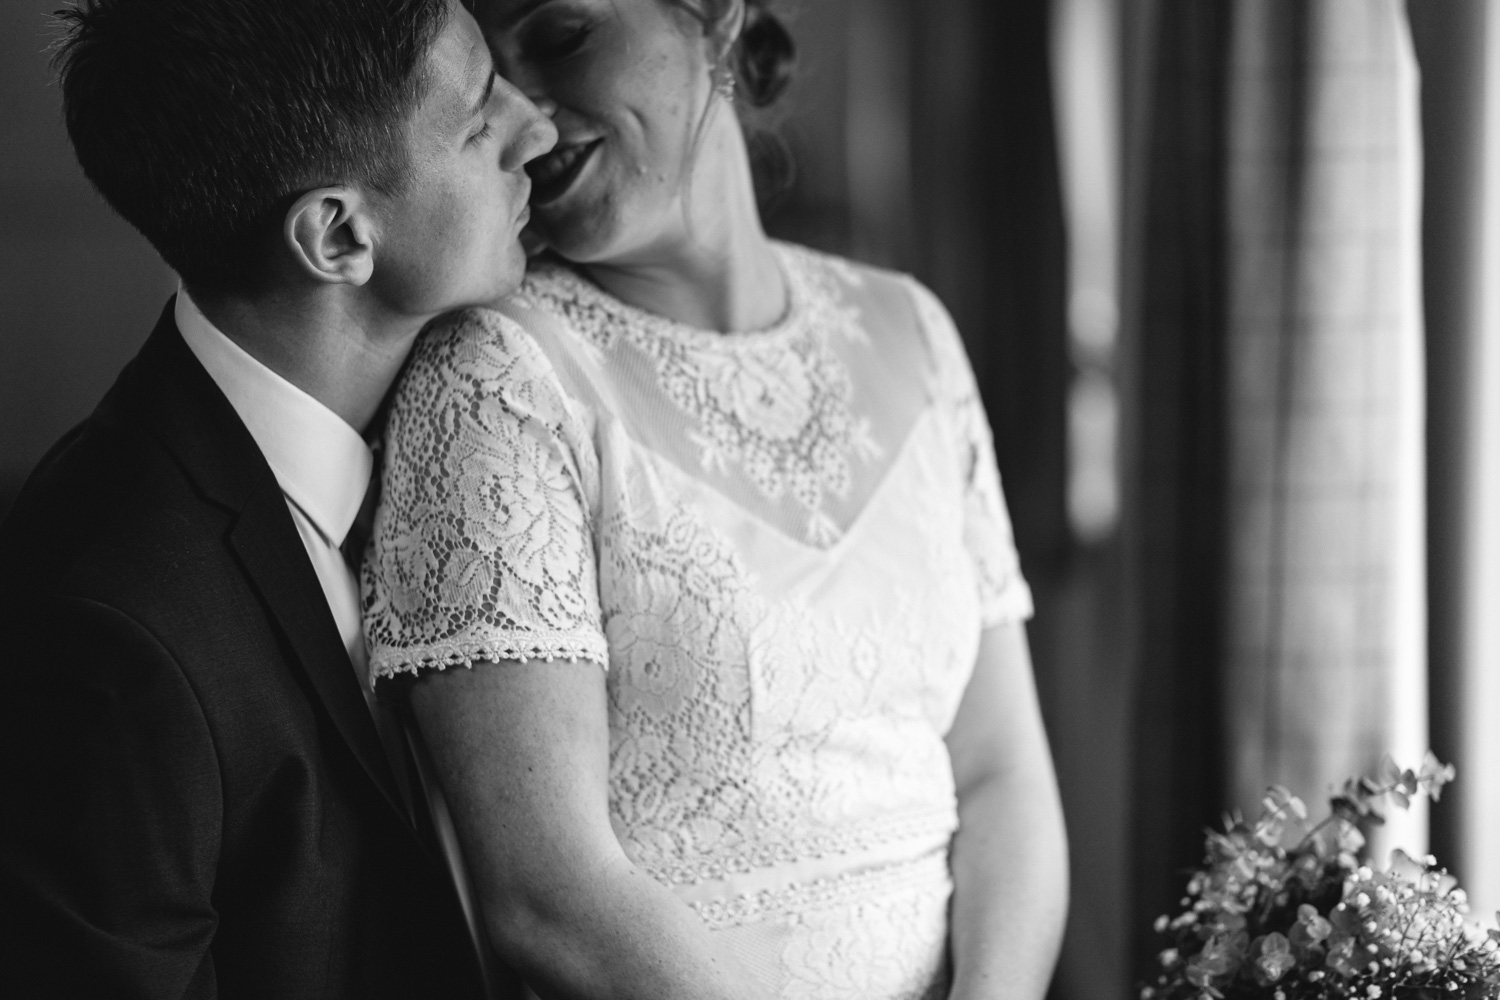 Bride and groom photograph kissing